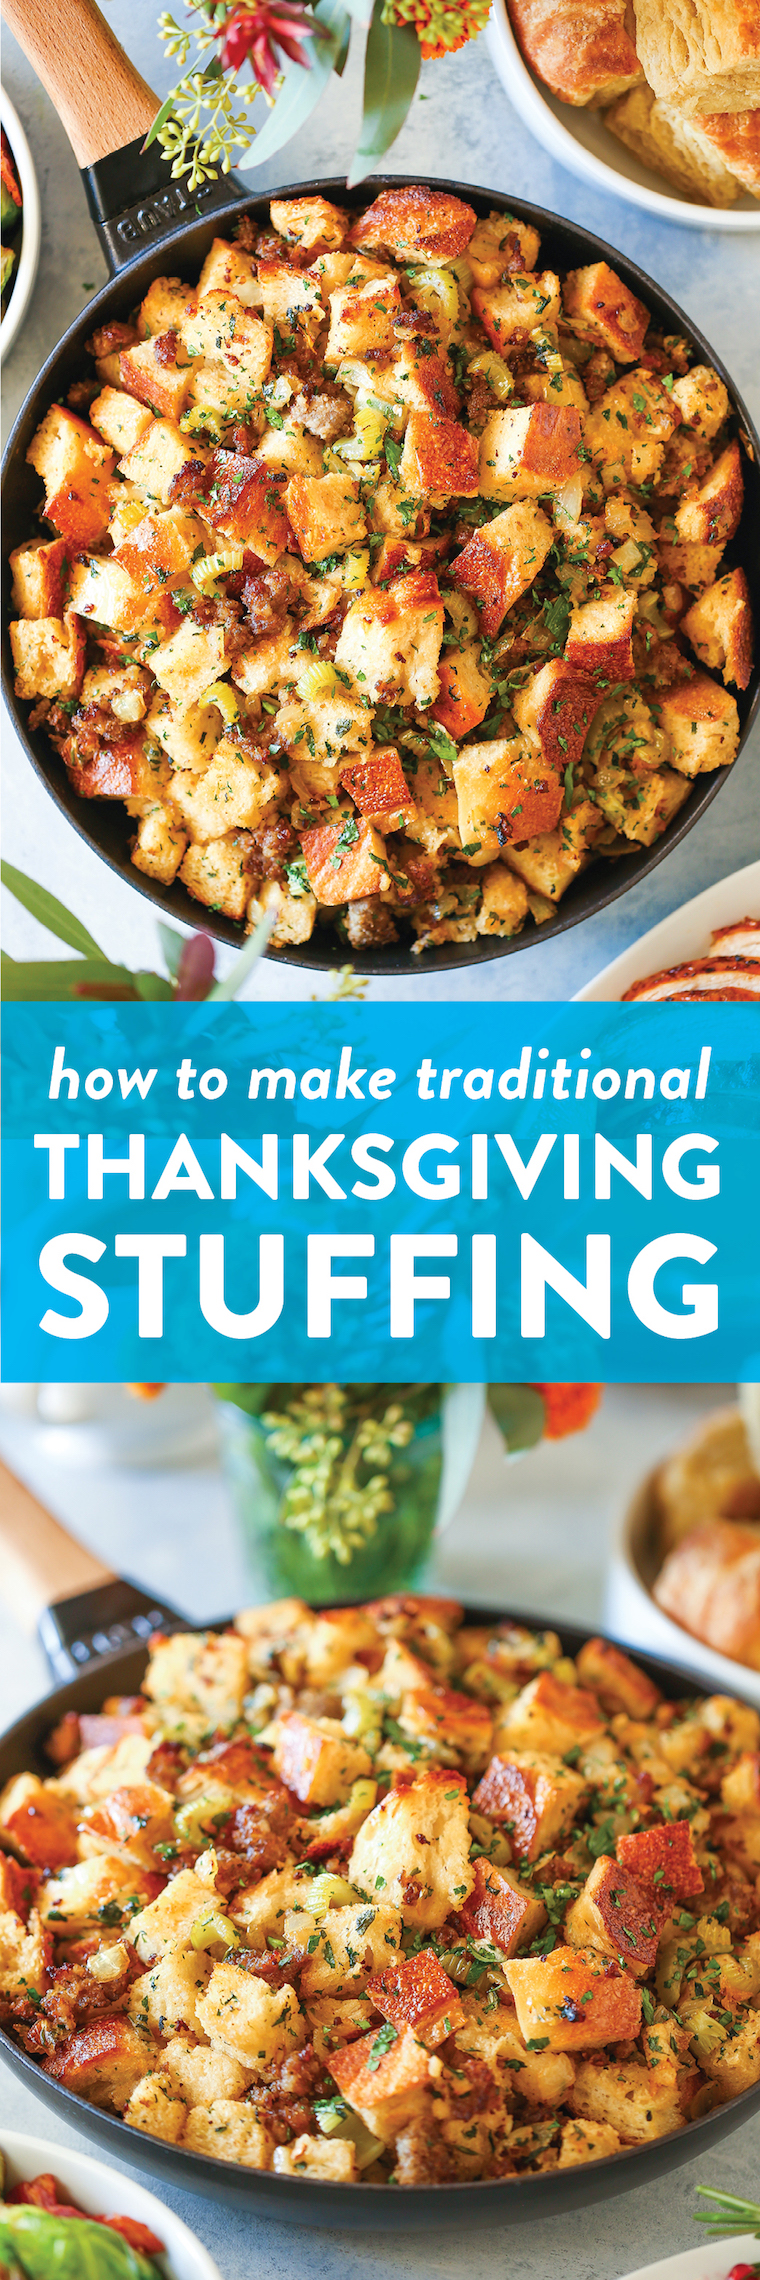 Classic Thanksgiving Stuffing - This will be the only stuffing recipe you will ever need! So much fresh herbs and so buttery. It's simply the best EVER!